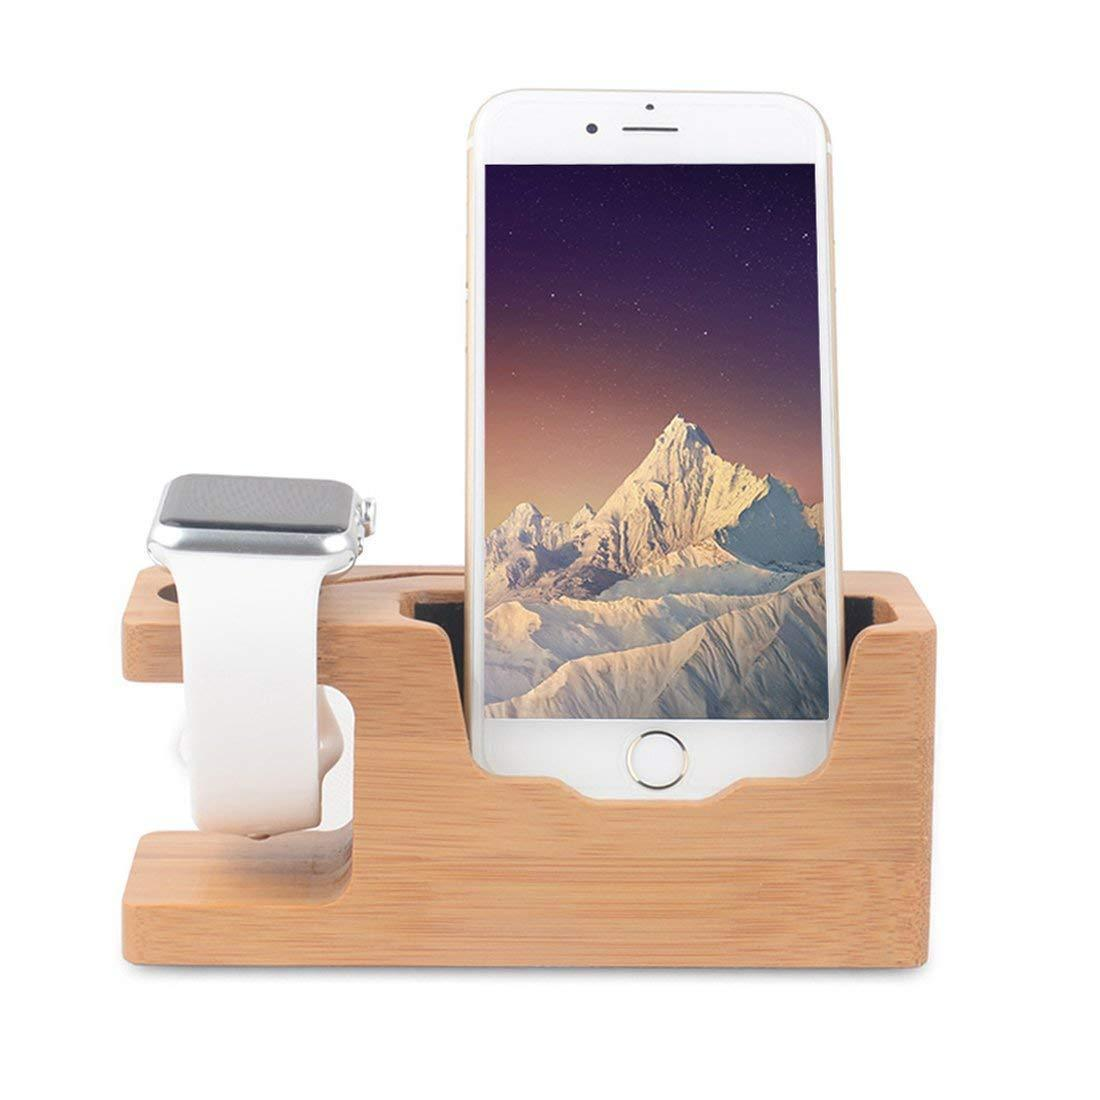 New Bamboo Wood USB Charging Station Desk Stand Charger For Your New Phone